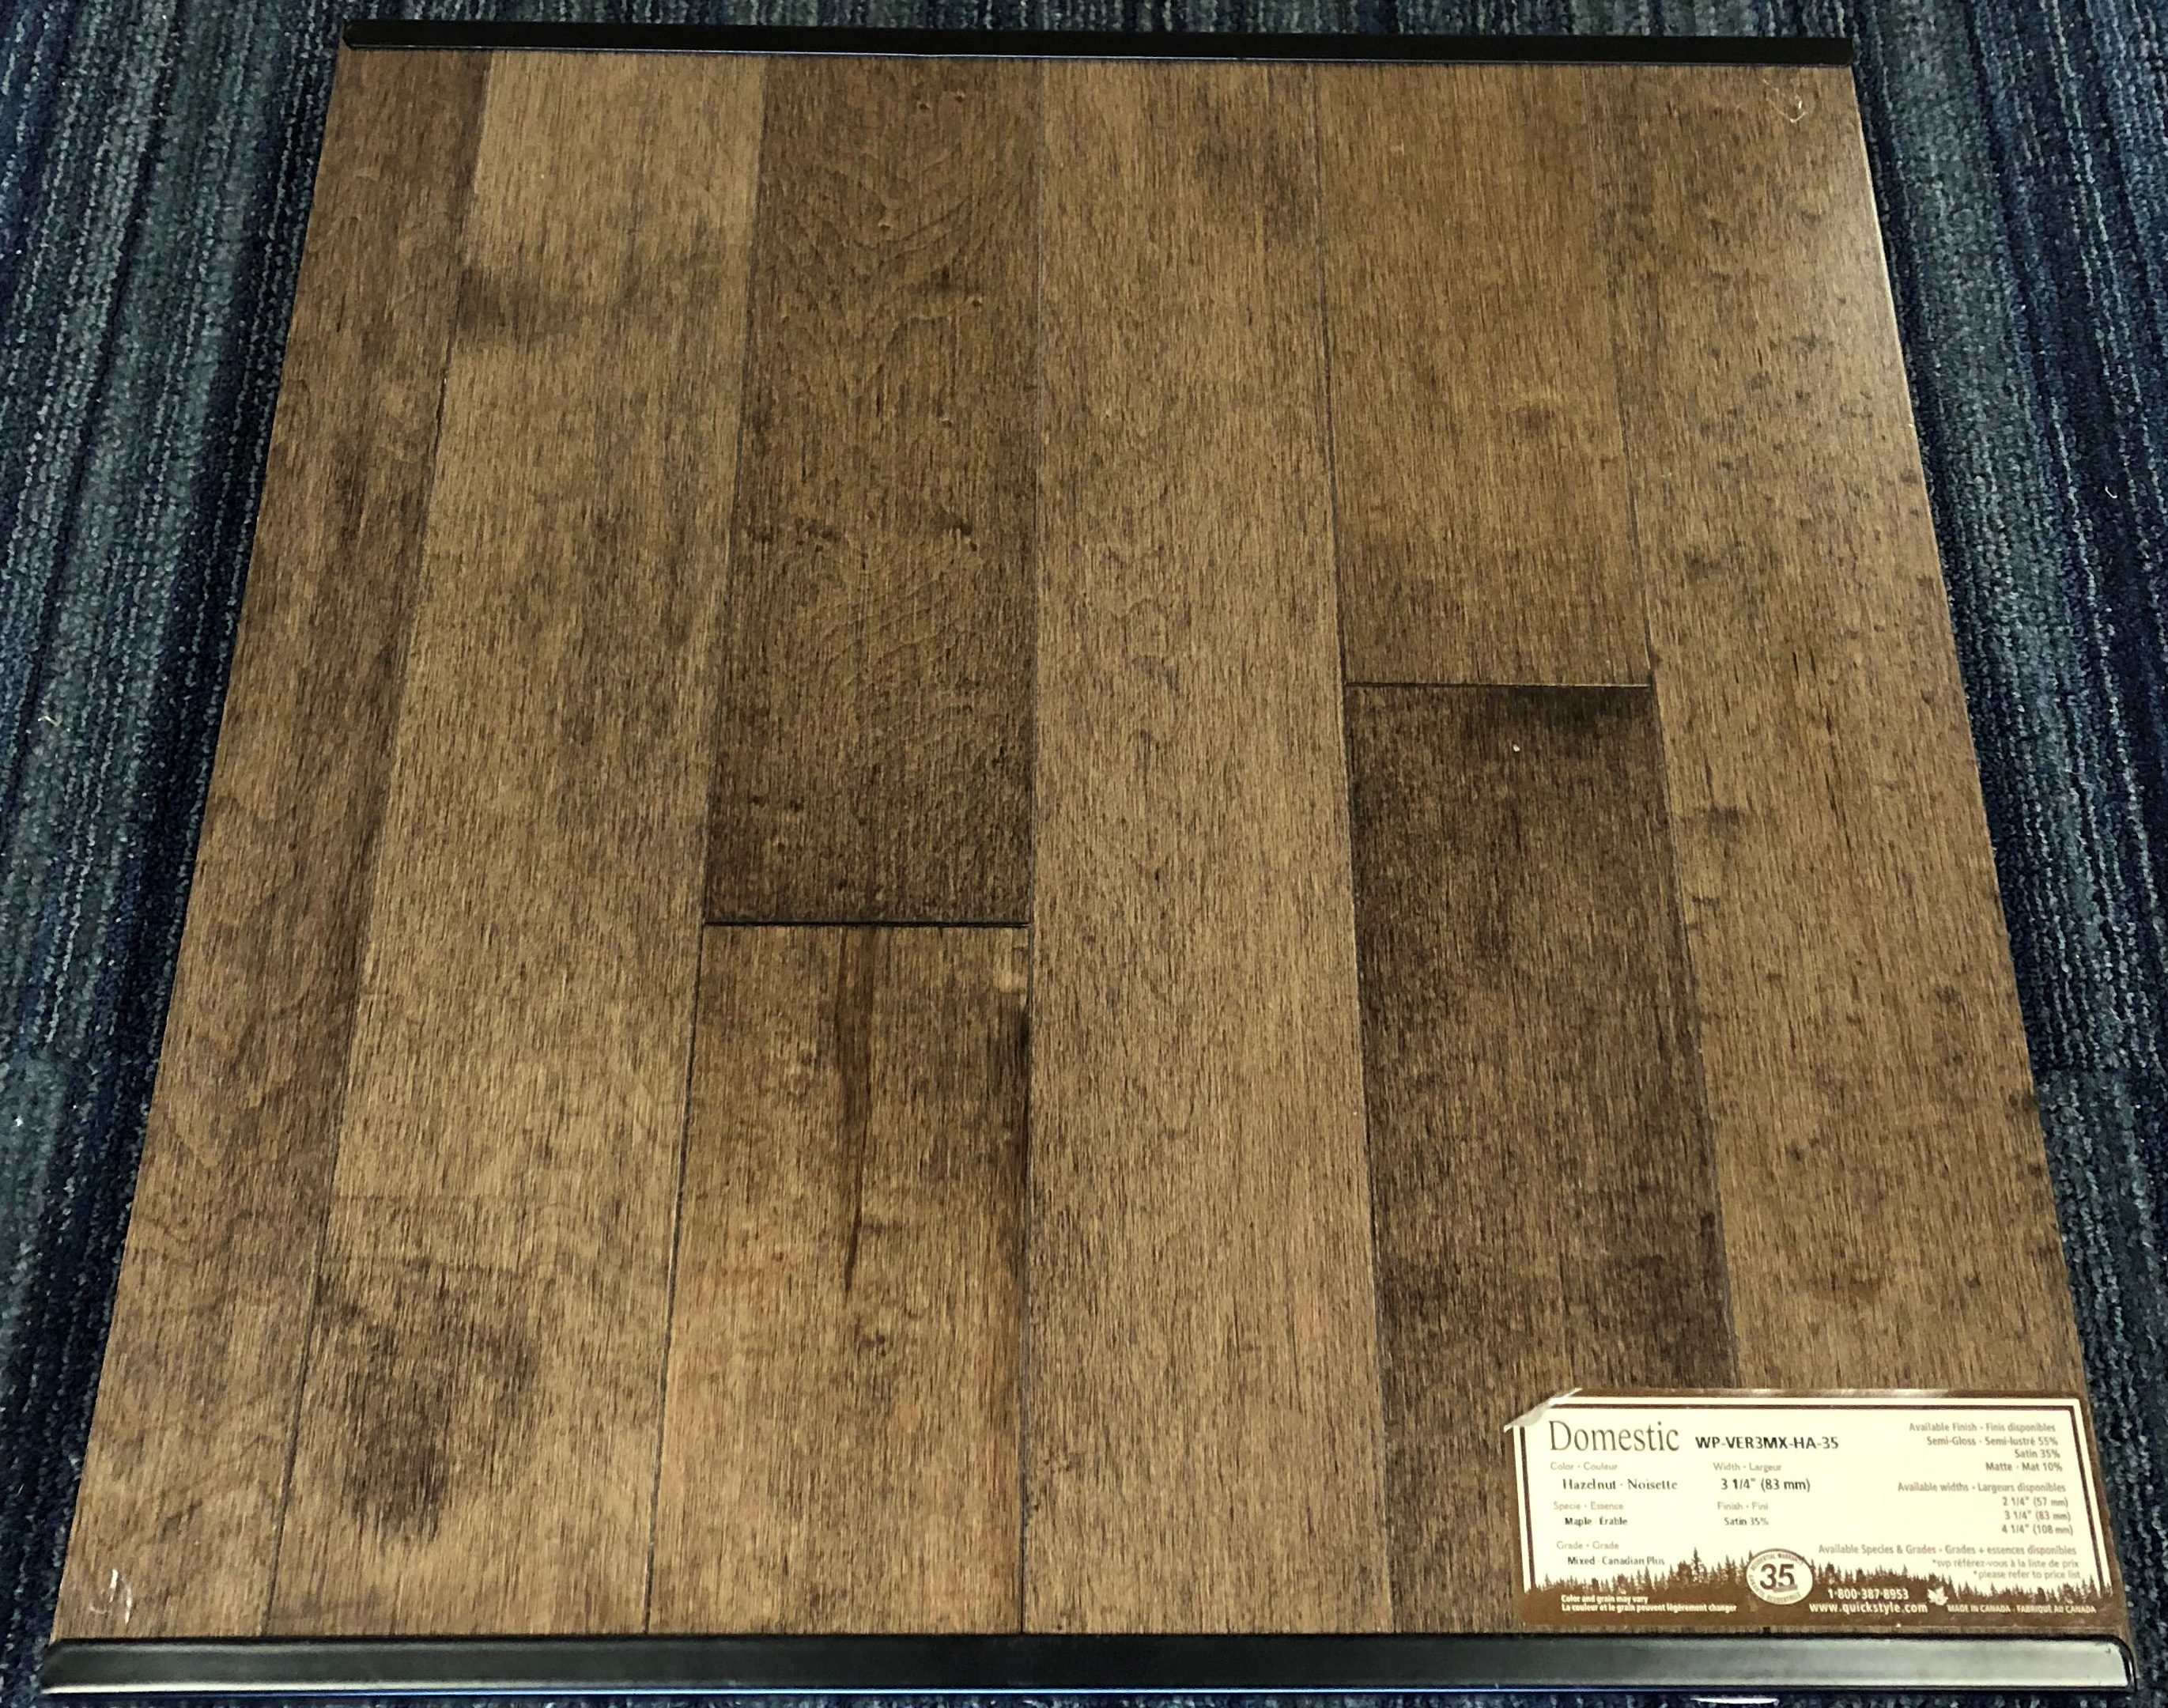 Wickham Hazelnut Maple Domestic Hardwood Flooring Image